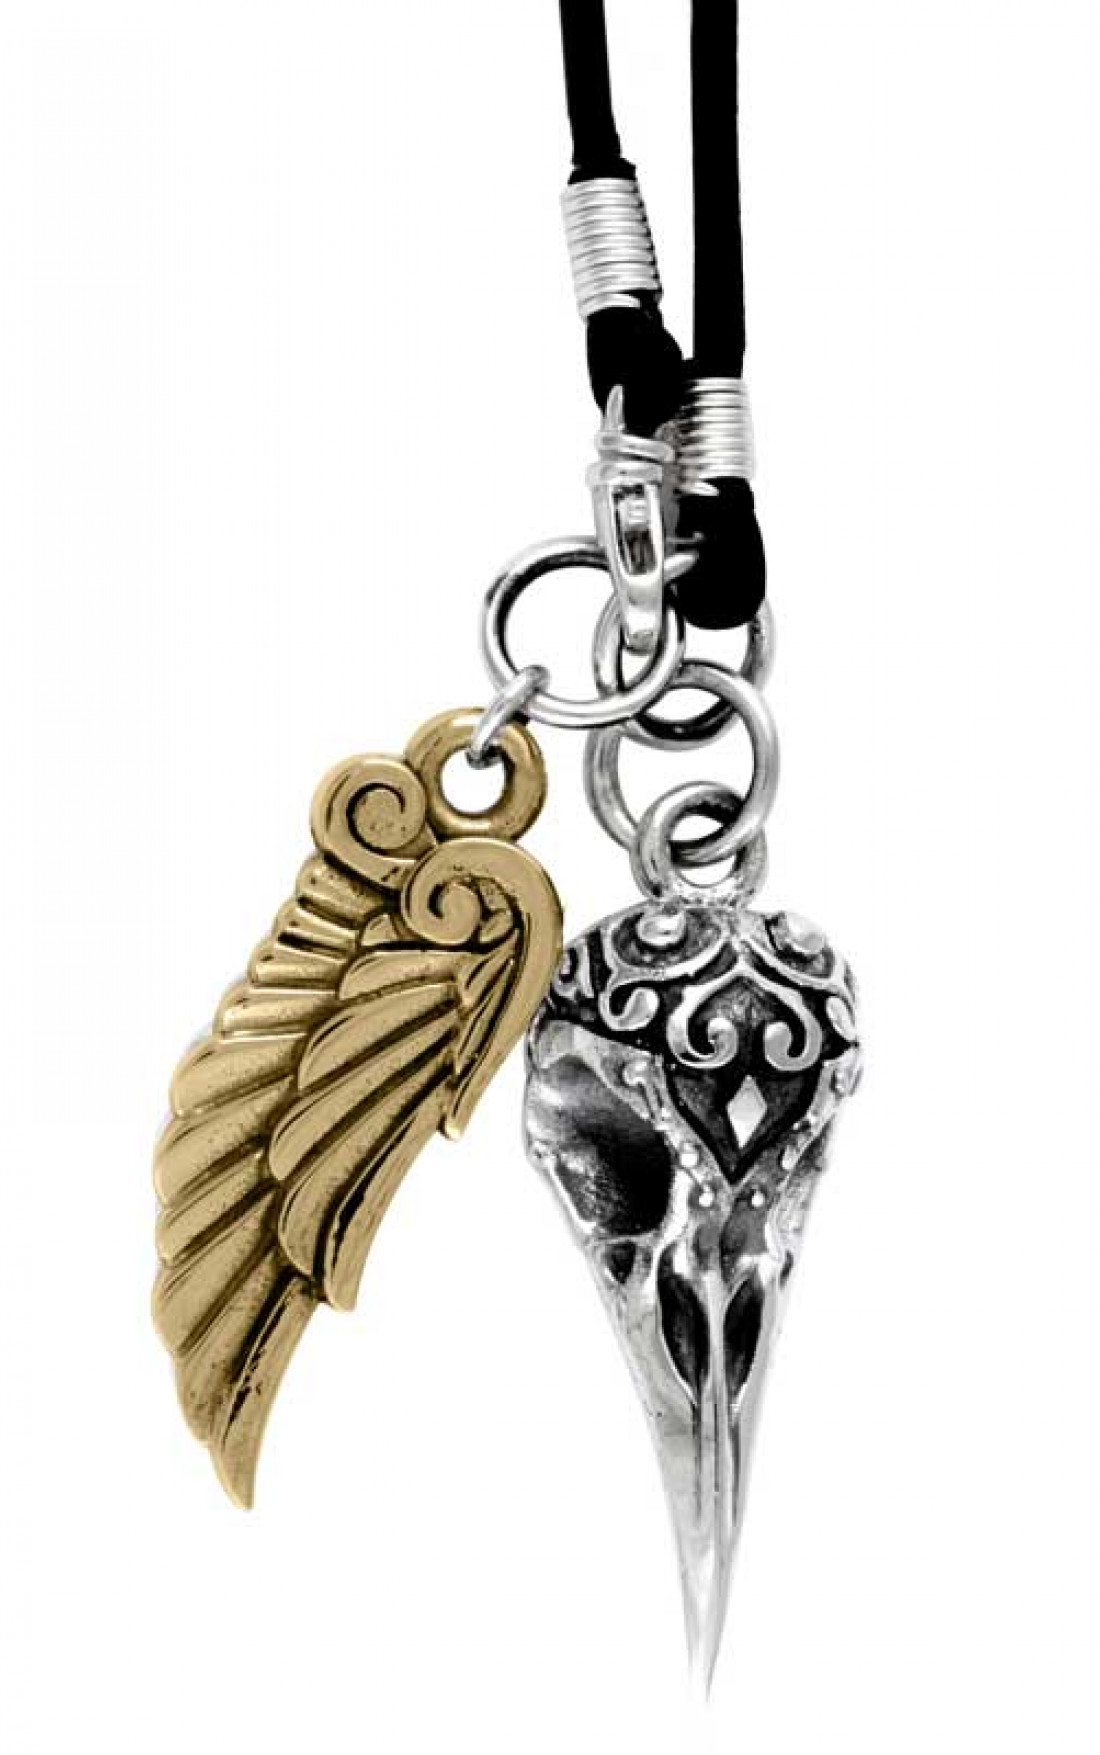 King Baby - Small Two Toned Raven Skull & Wing Pendant on Cord (K52-308B)